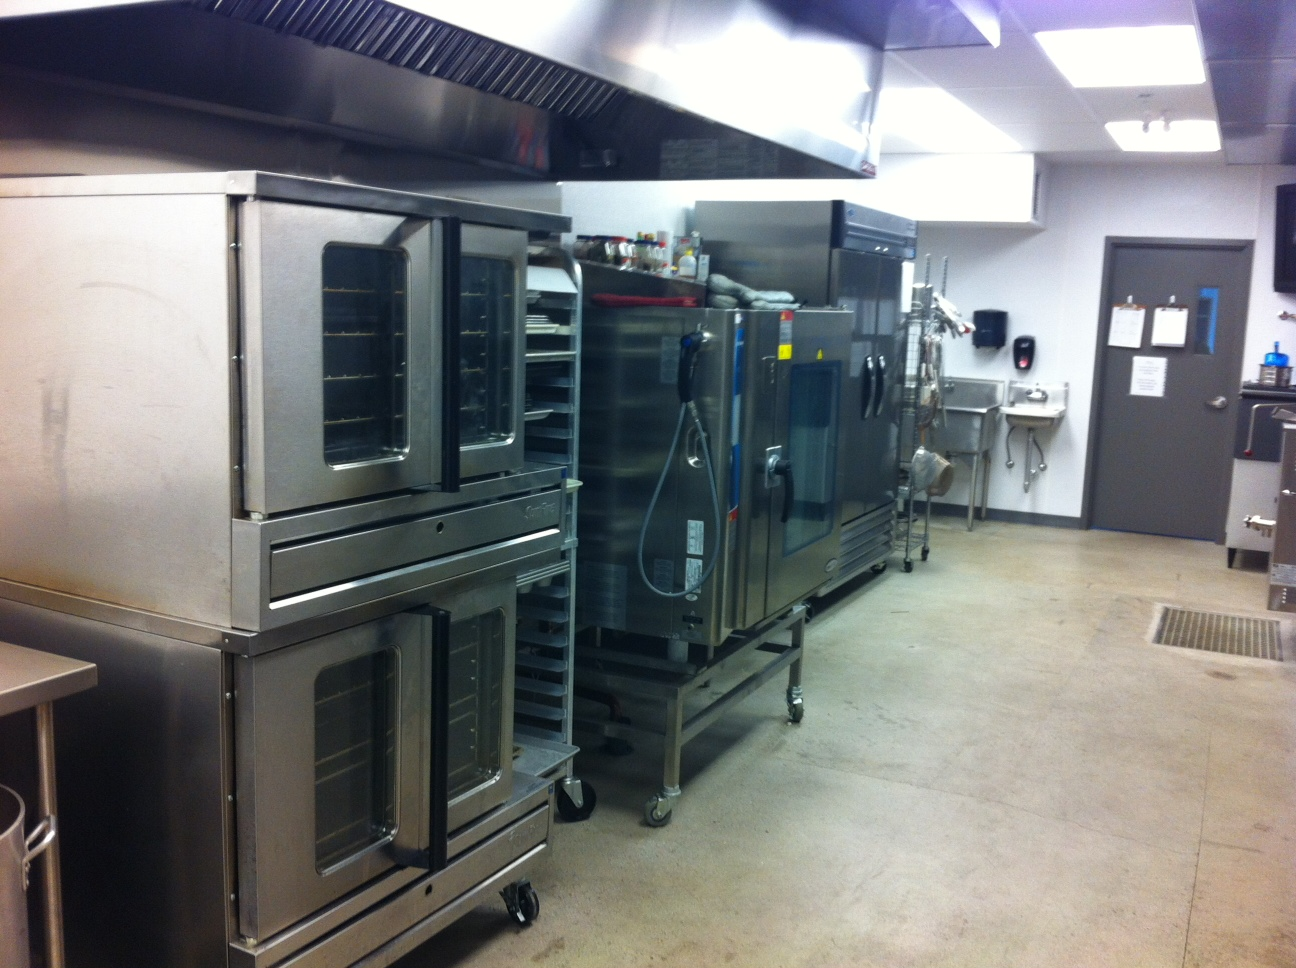 Cauel Caterers Production Facility: Cooking